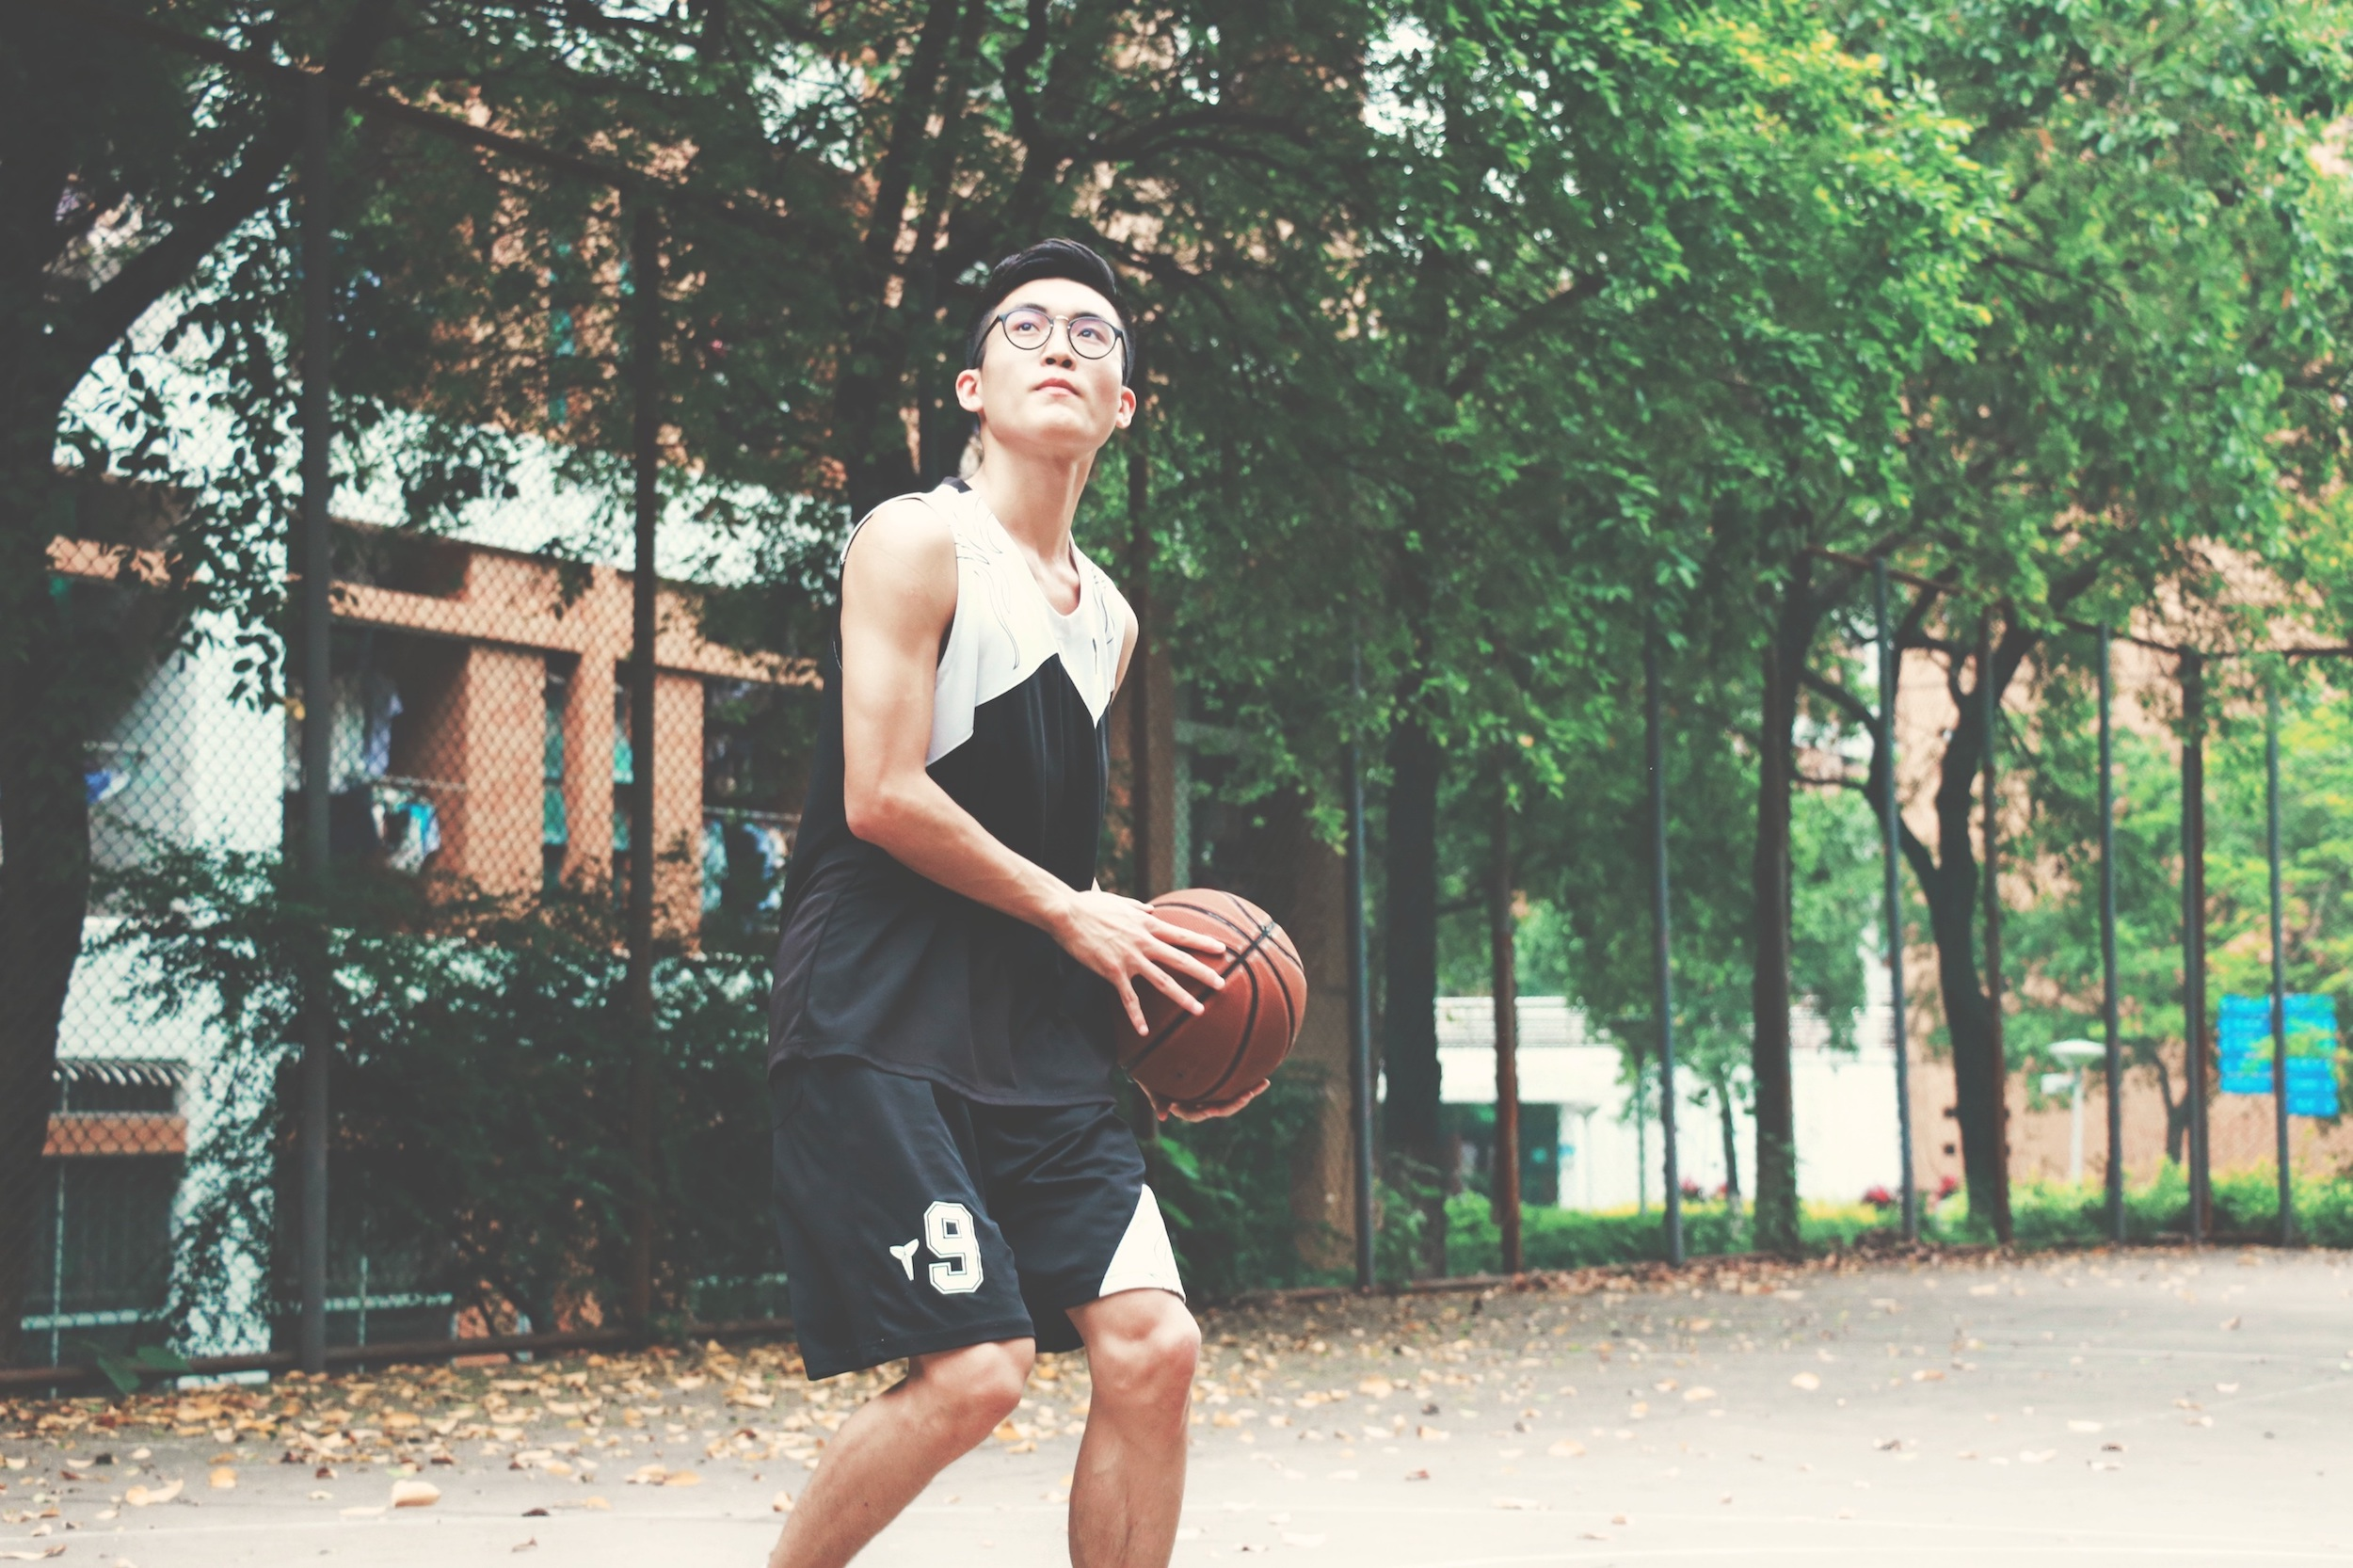 Man playing basketball for exercise